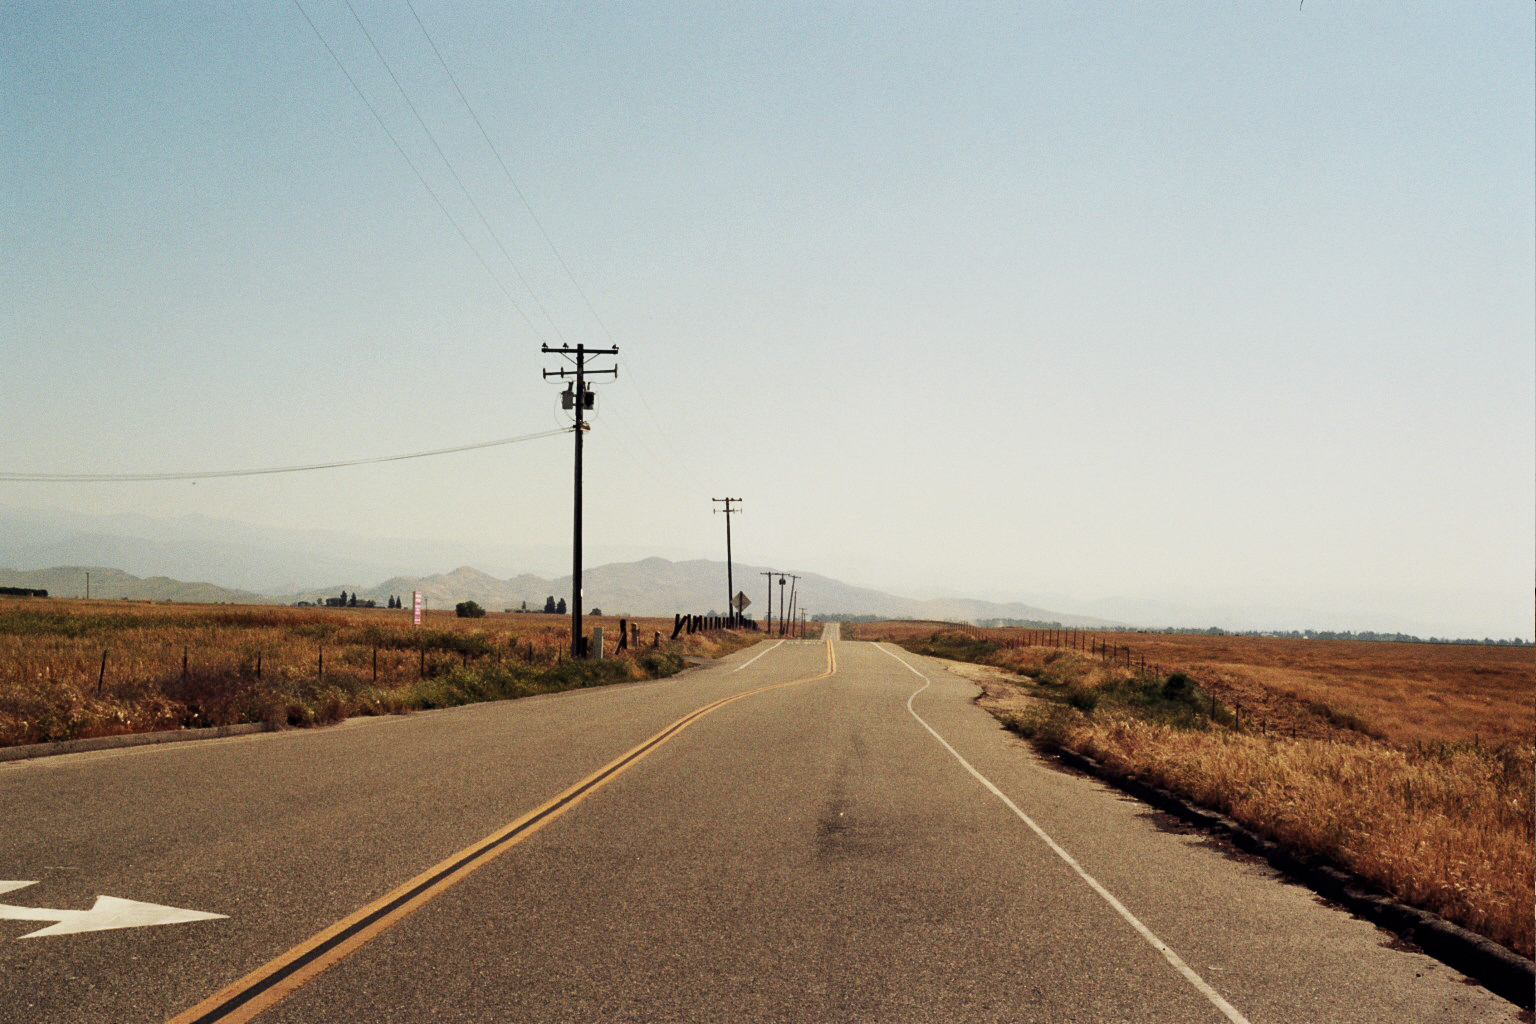 """""""Nothing behind me, everything ahead of me, as is ever so on the road."""" ― Jack Kerouac, On the Road"""